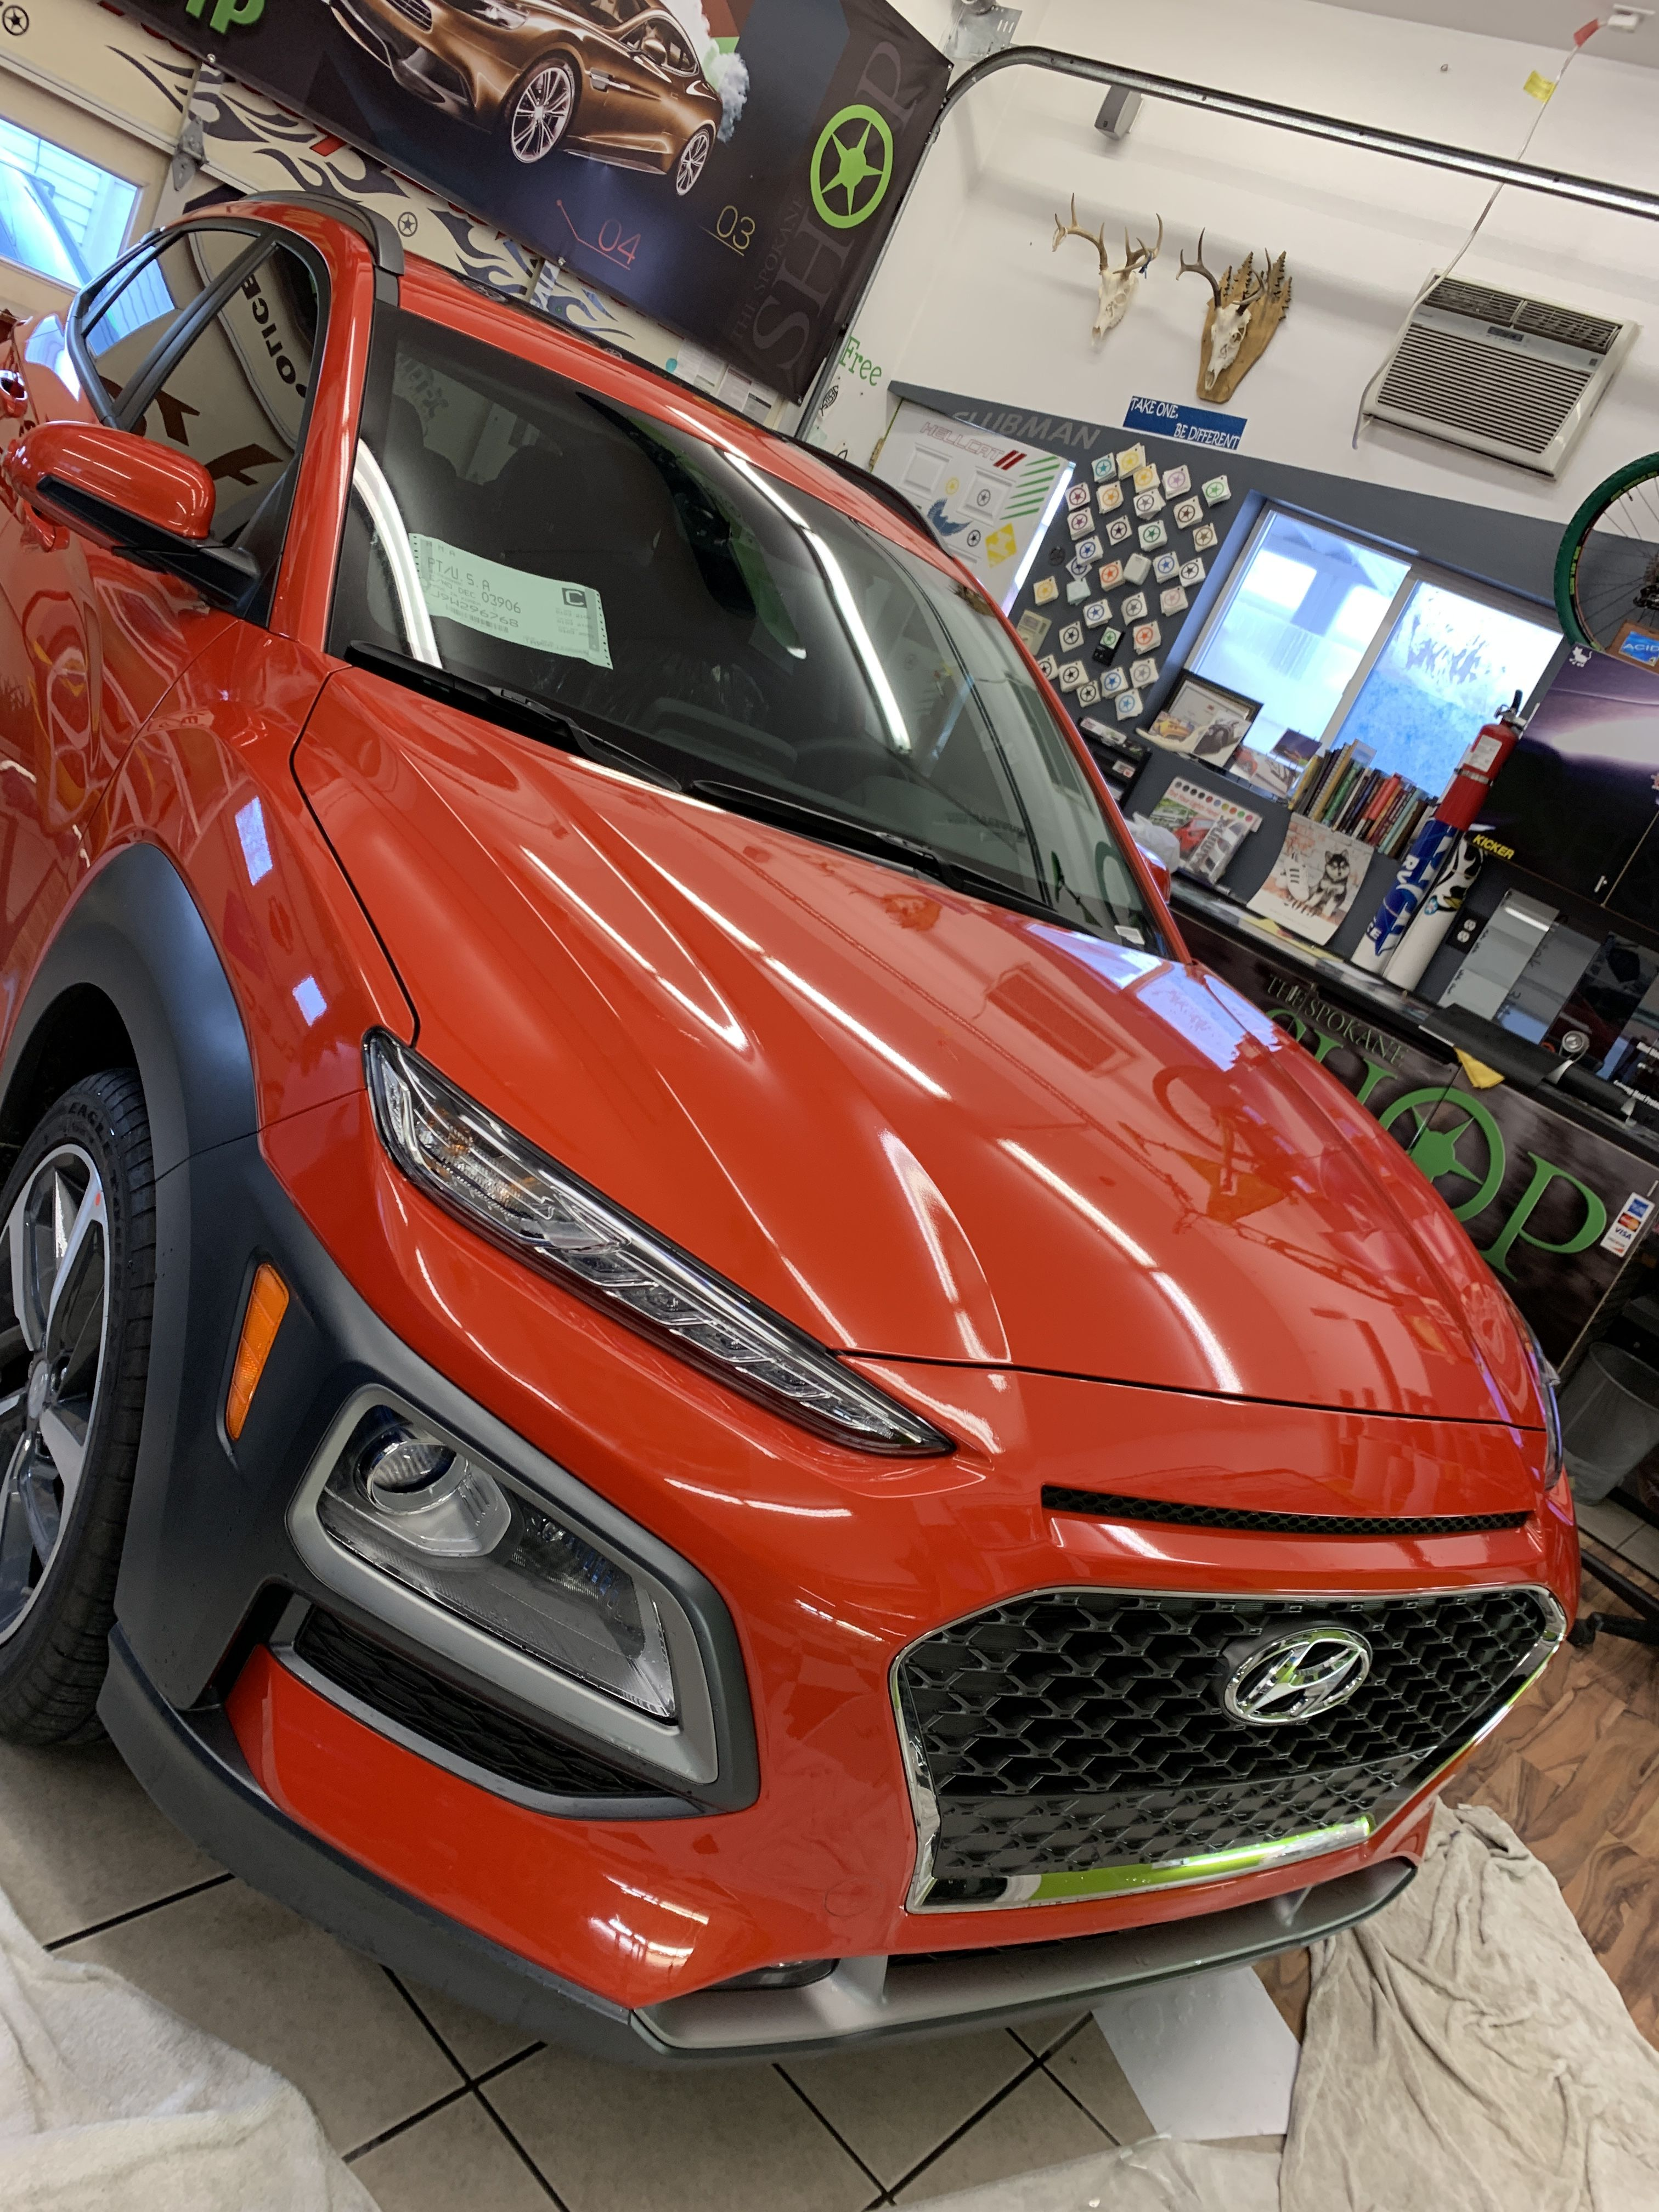 Beautiful Brand New Hyundai With Pretty Orange Paint This Calls